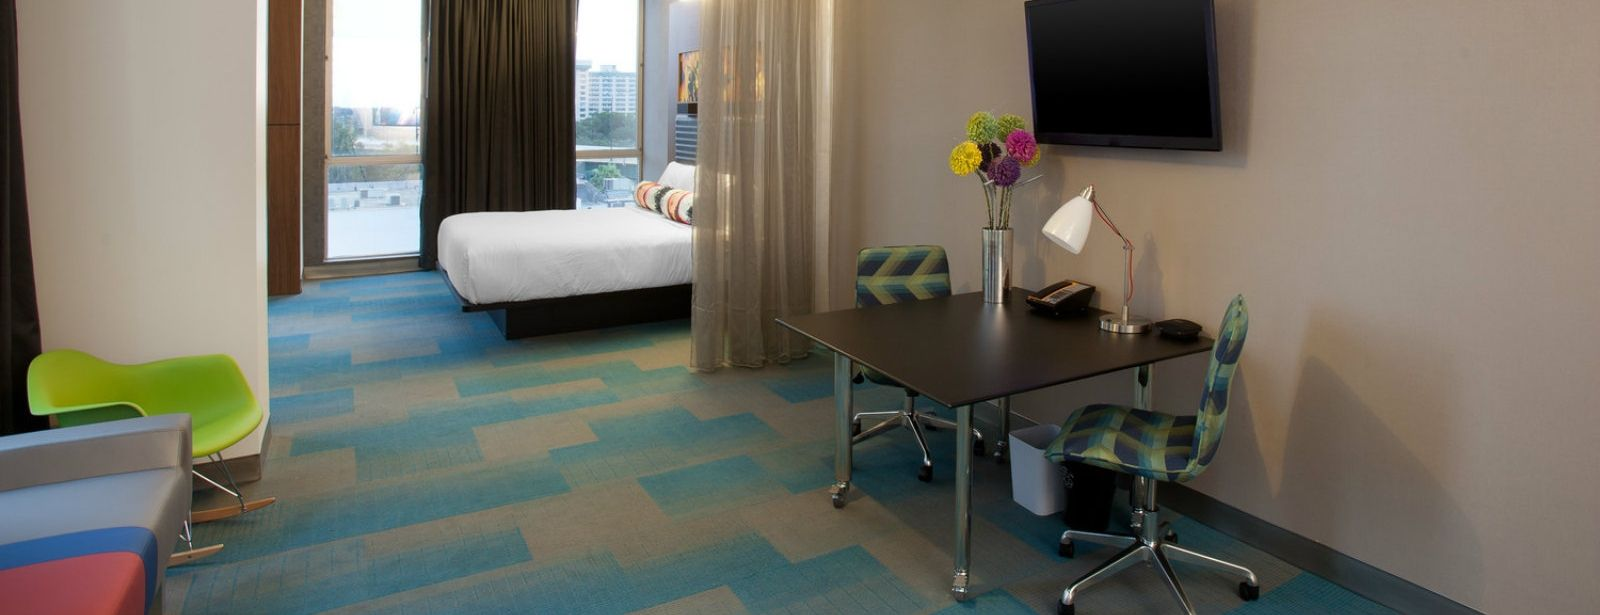 Orlando Accommodations - Aloft Corner Suite